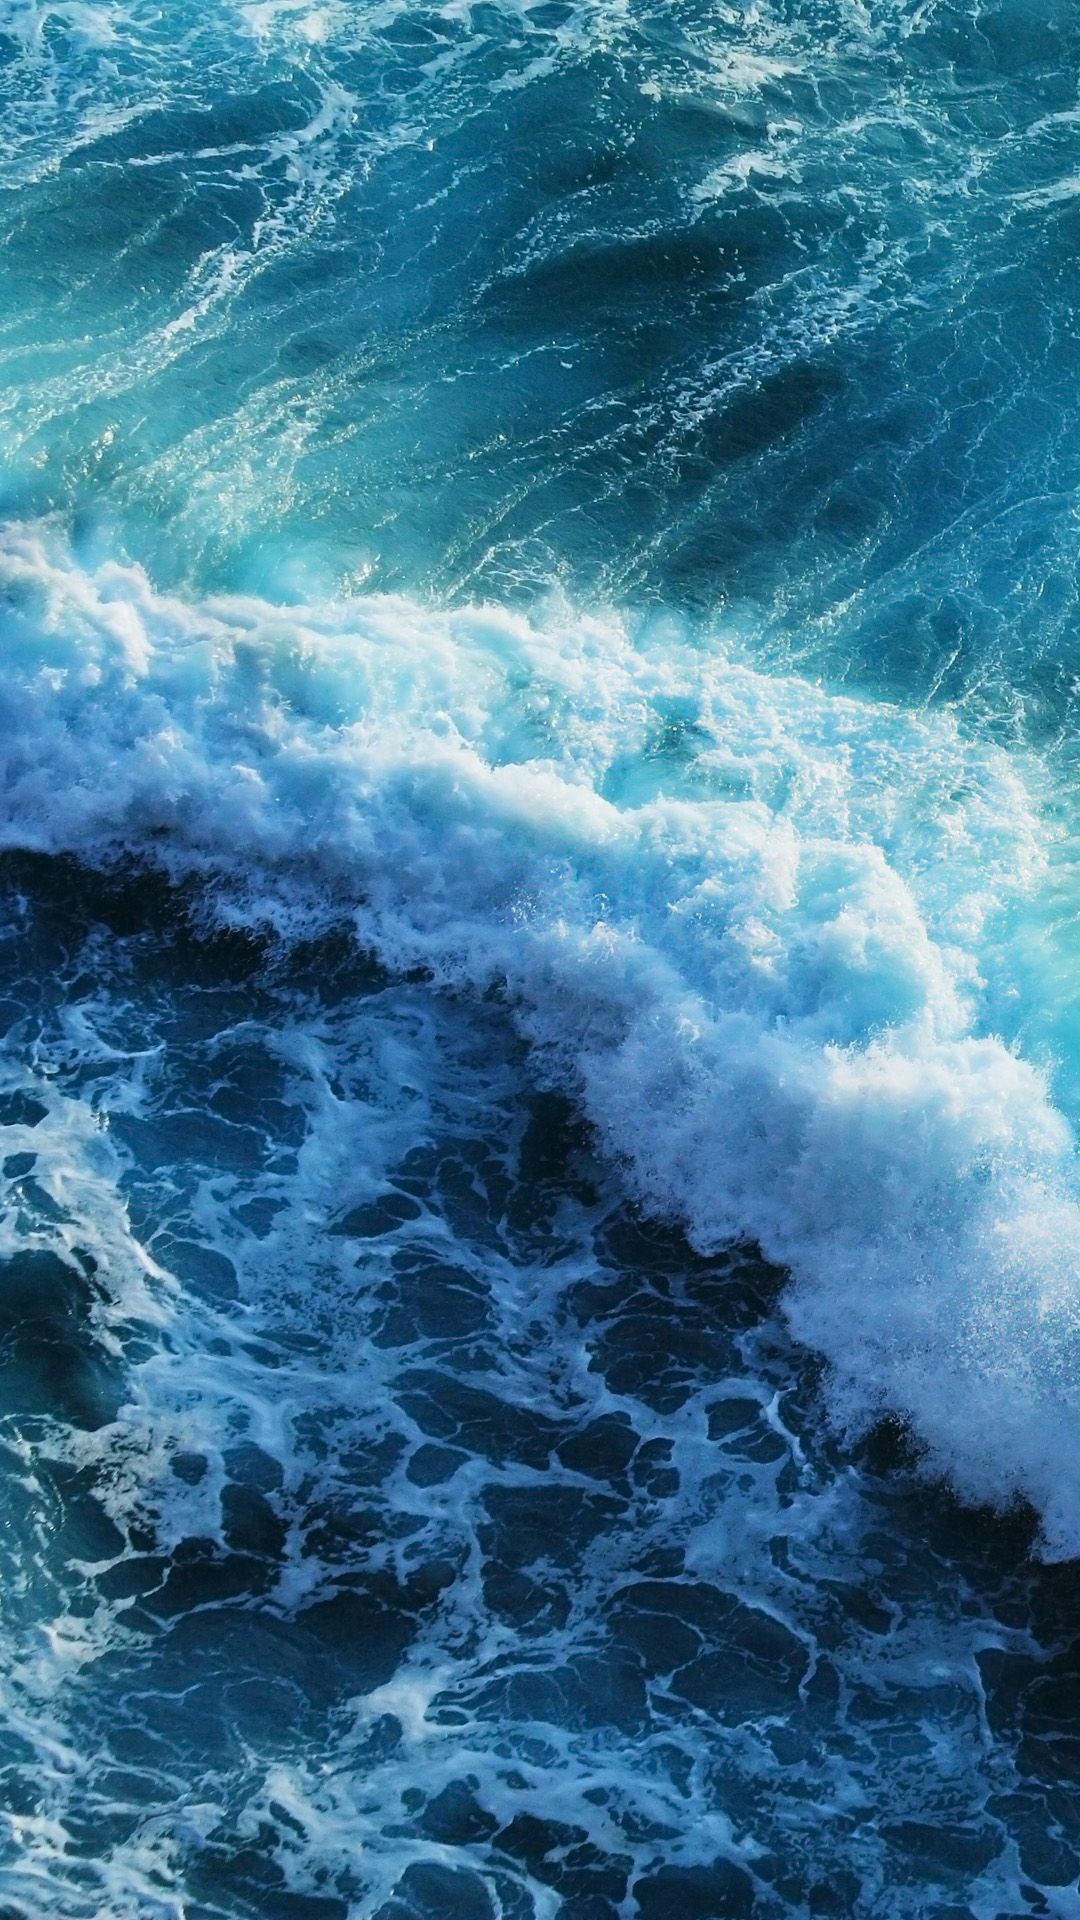 Iphone Ios 7 Wallpaper Tumblr For Ipad Beaches Waves